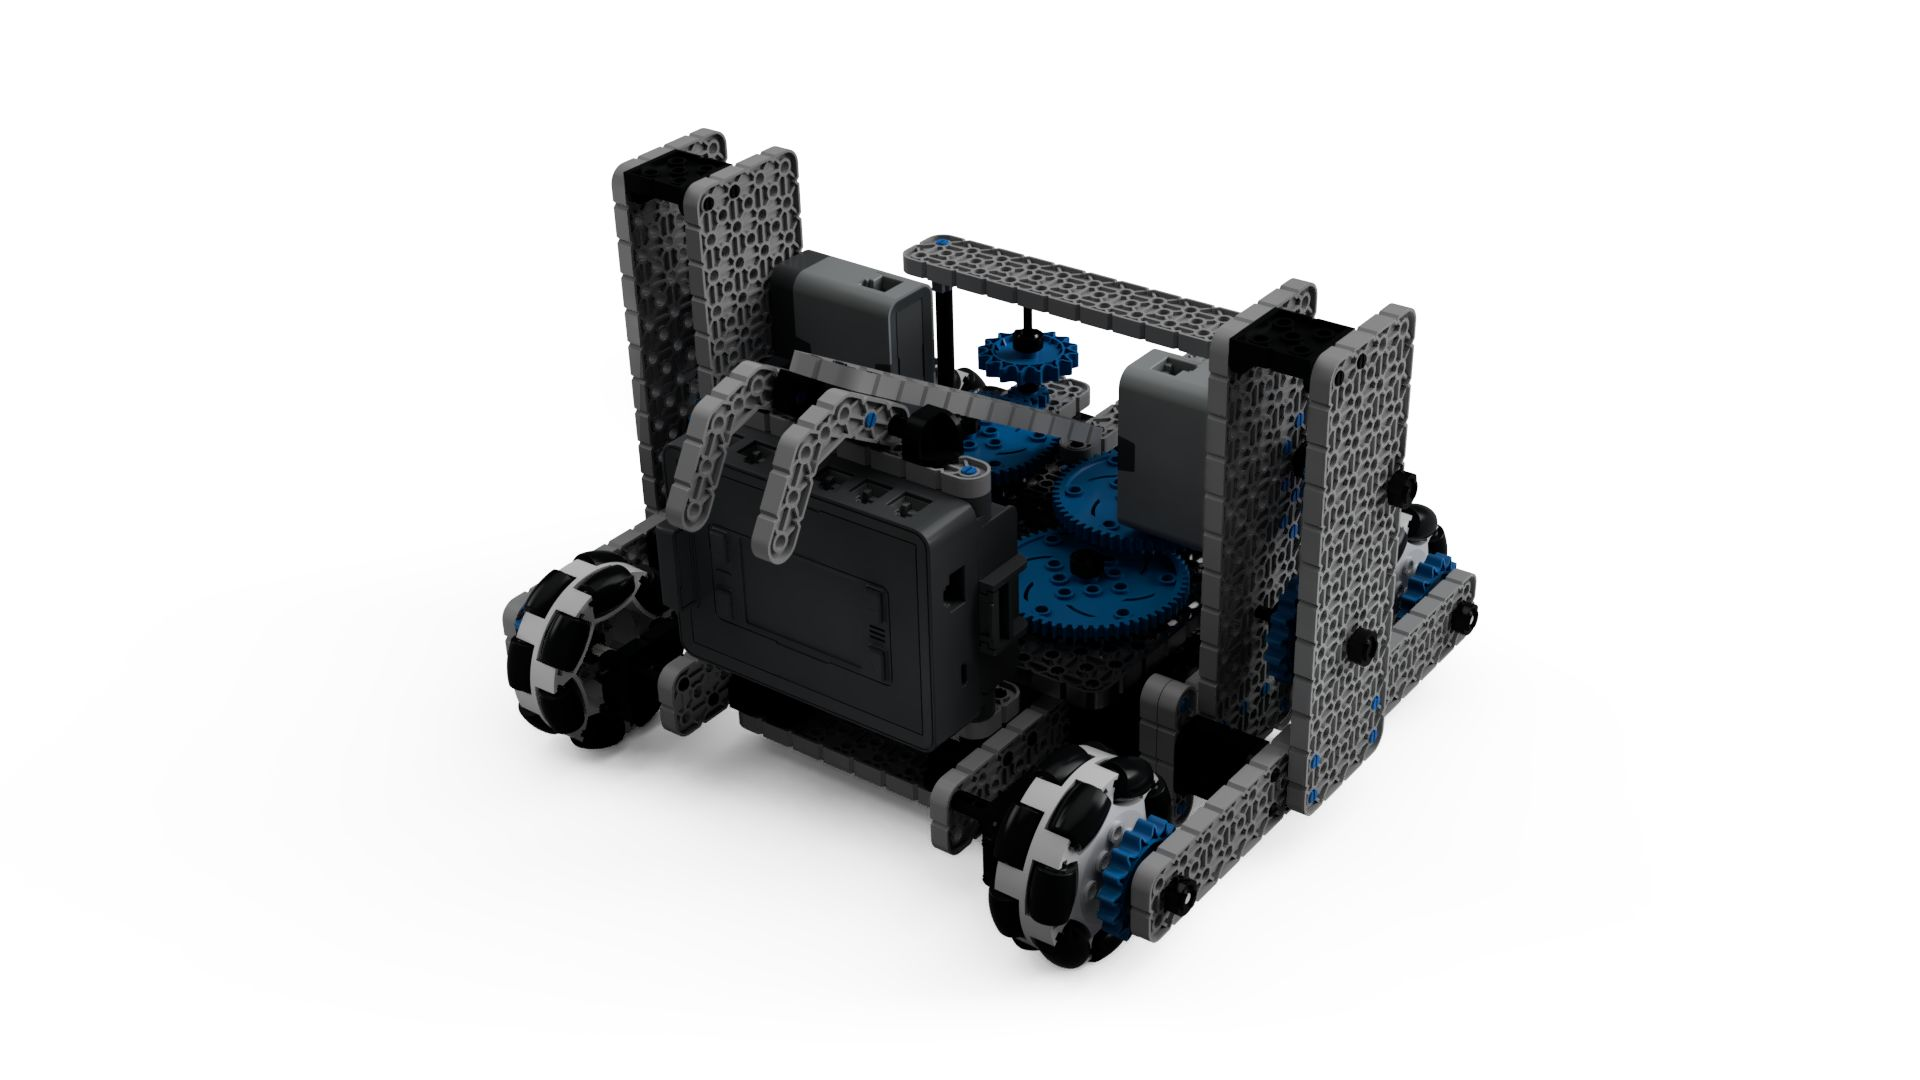 Vex-iq---ball-trigger-robot-2019-jun-05-08-29-05pm-000-customizedview7571015519-png-3500-3500